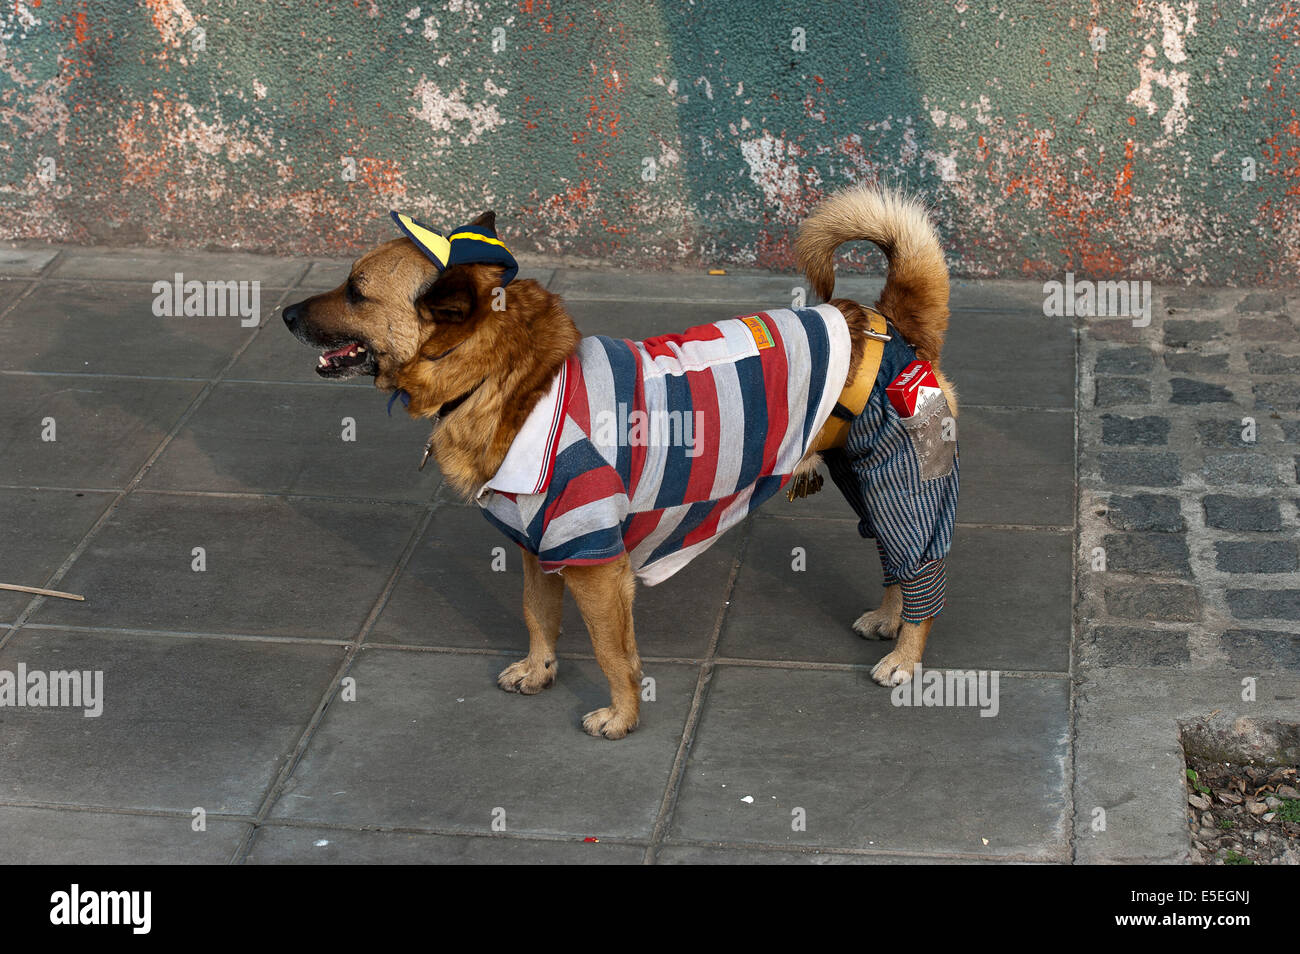 Clothe dog on the street, Buenos Aires, Argentina - Stock Image